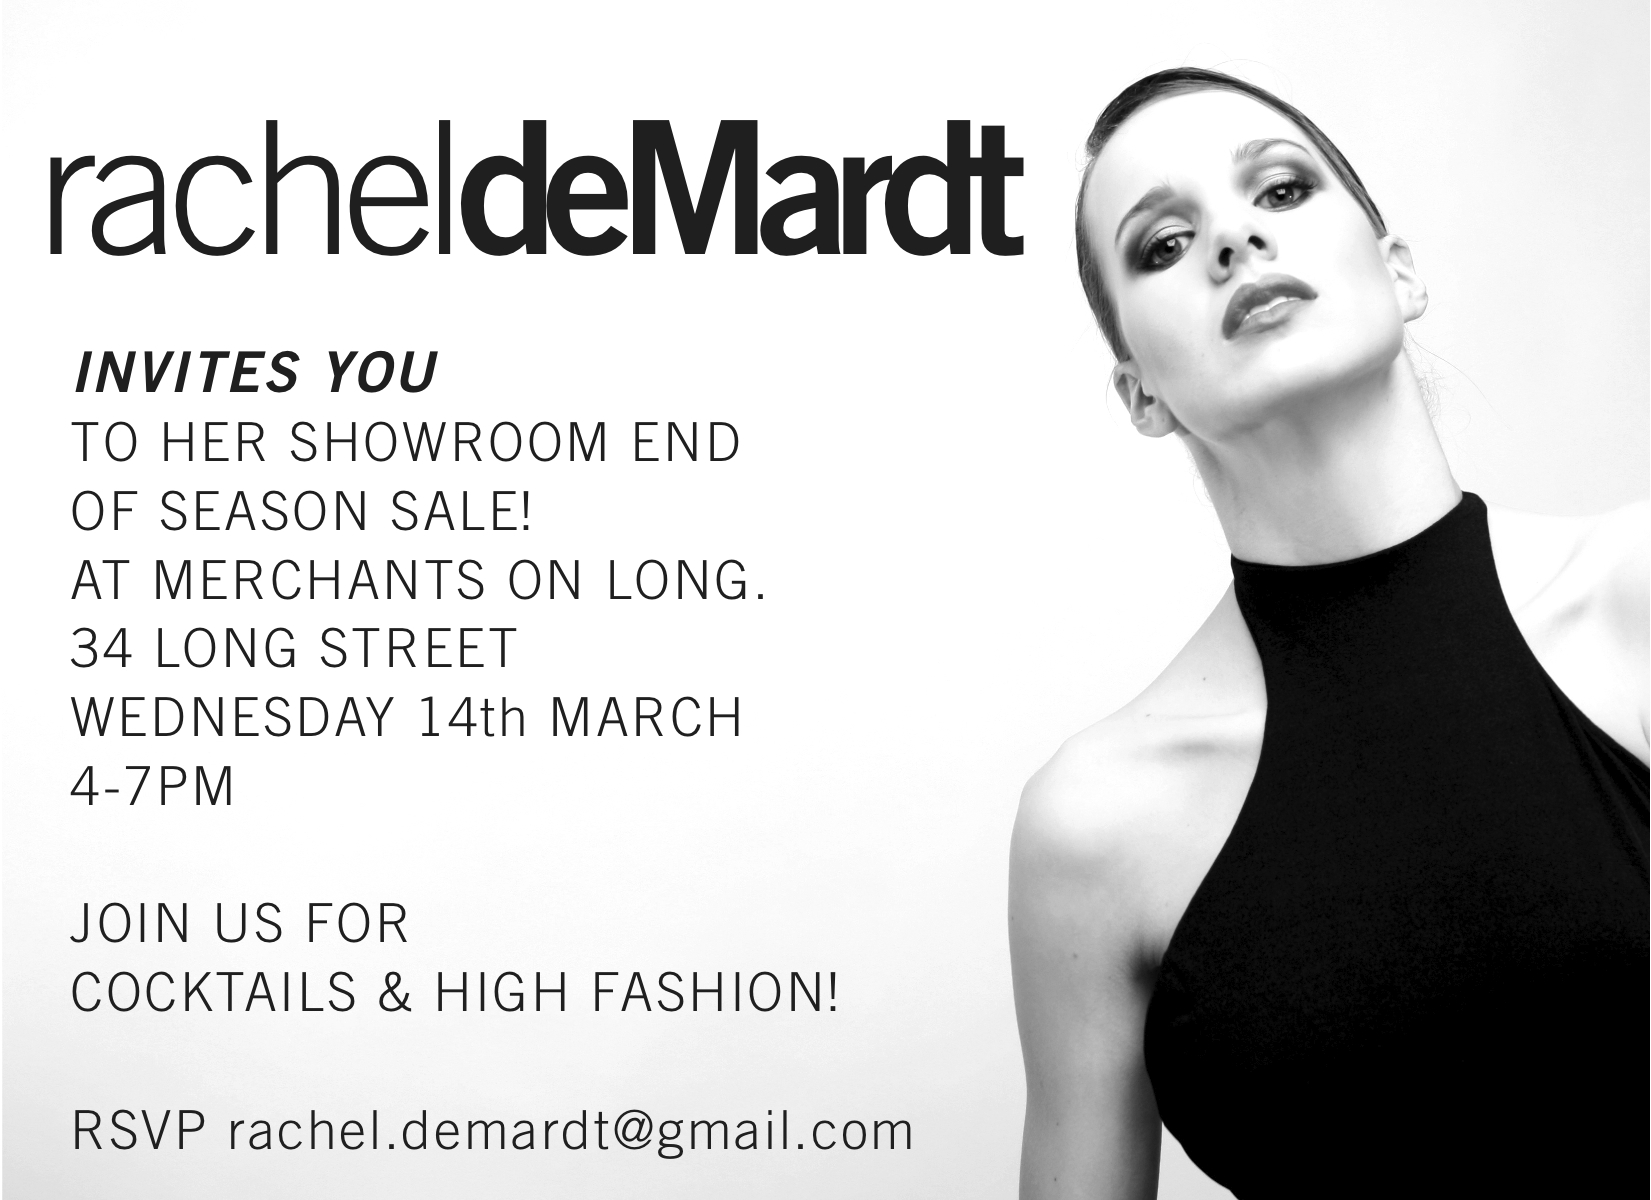 Rachel de Mardt Sale Merchants on Long